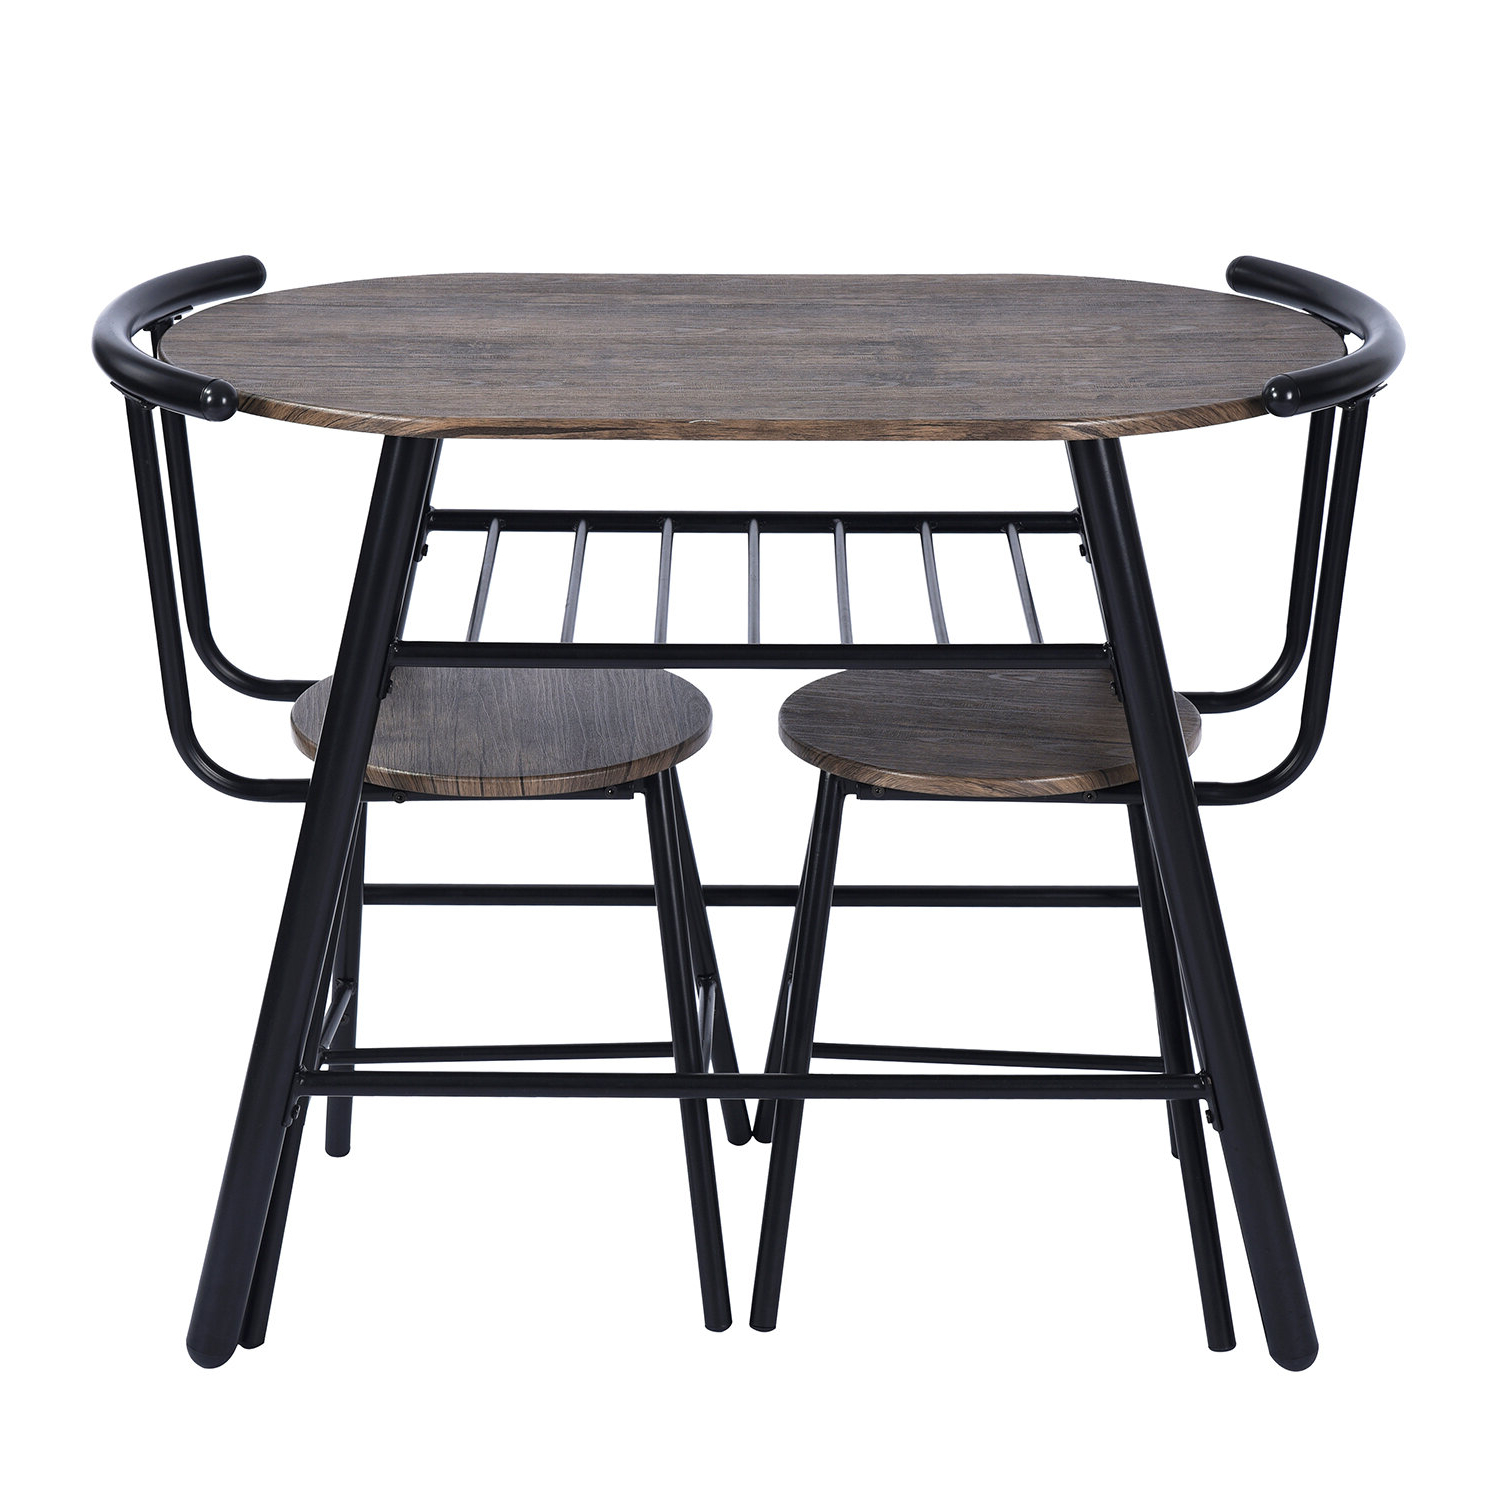 Popular Bearden 3 Piece Dining Sets Within Williston Forge Peckham 3 Piece Dining Set (View 10 of 25)